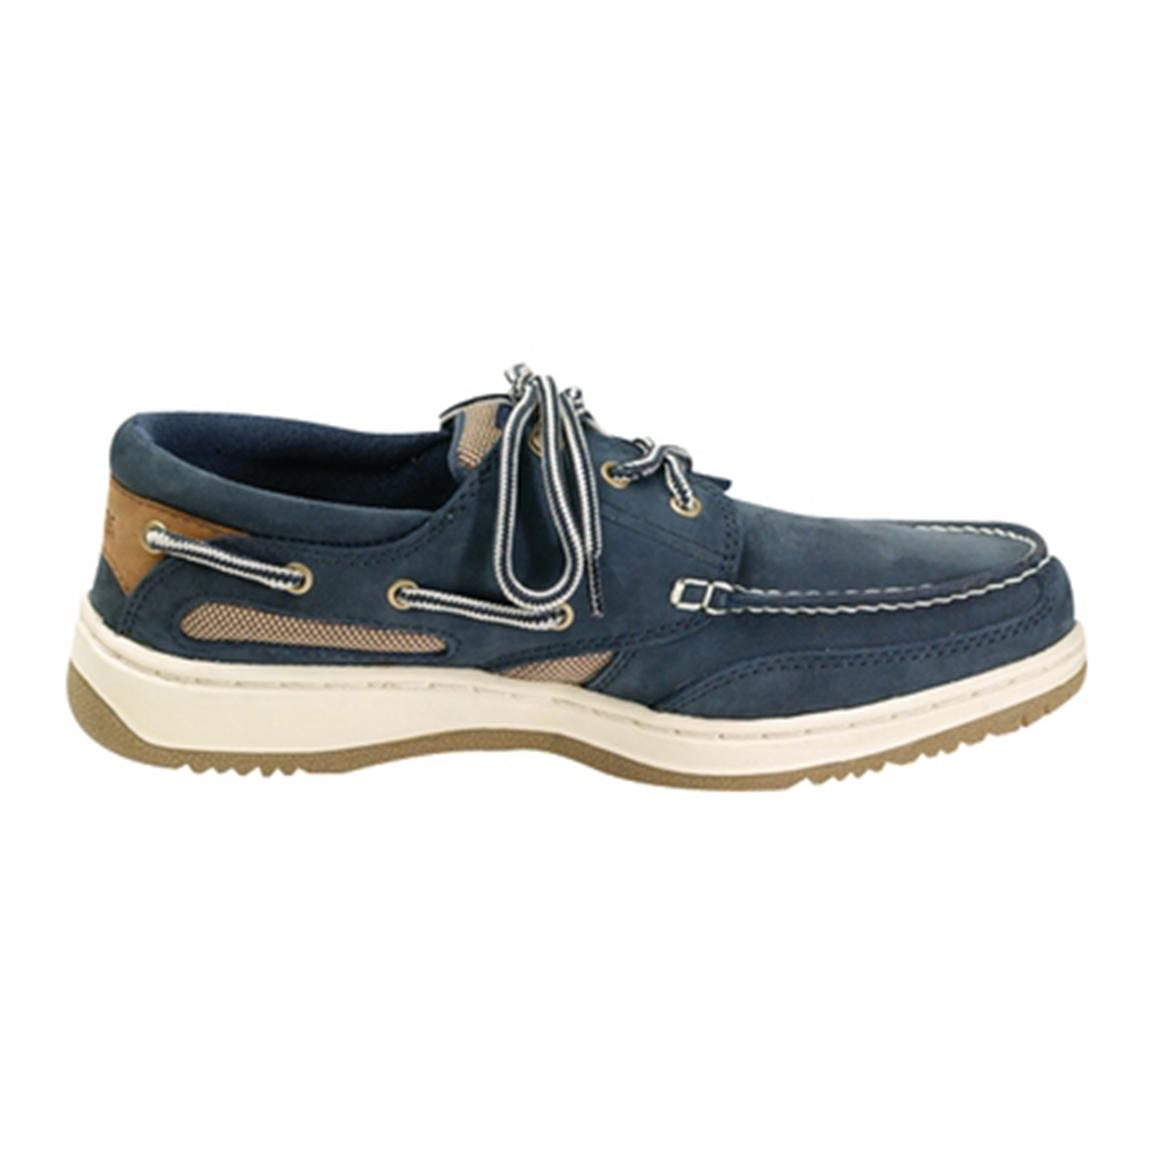 Yachter's Choice™ Sydney Deck Shoes, Navy